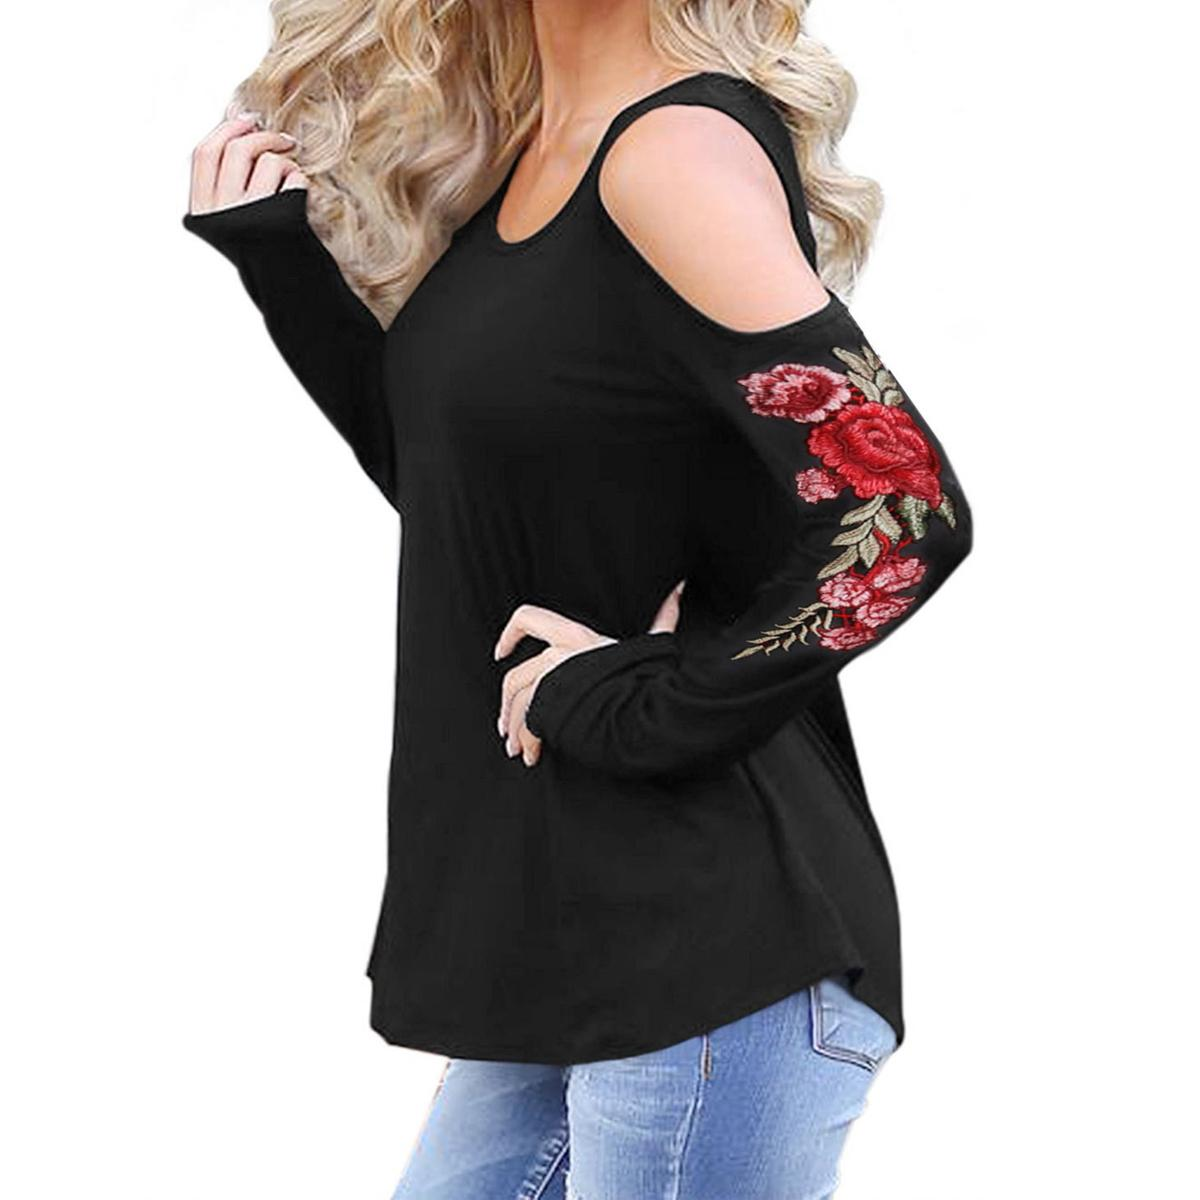 3dd099a2890 Embroidery Floral Cold Shoulder Women T Shirts Winter 2019 Female Sexy  Tattoo Tops Autumn Long Sleeve Casual Stretch Tees GV996